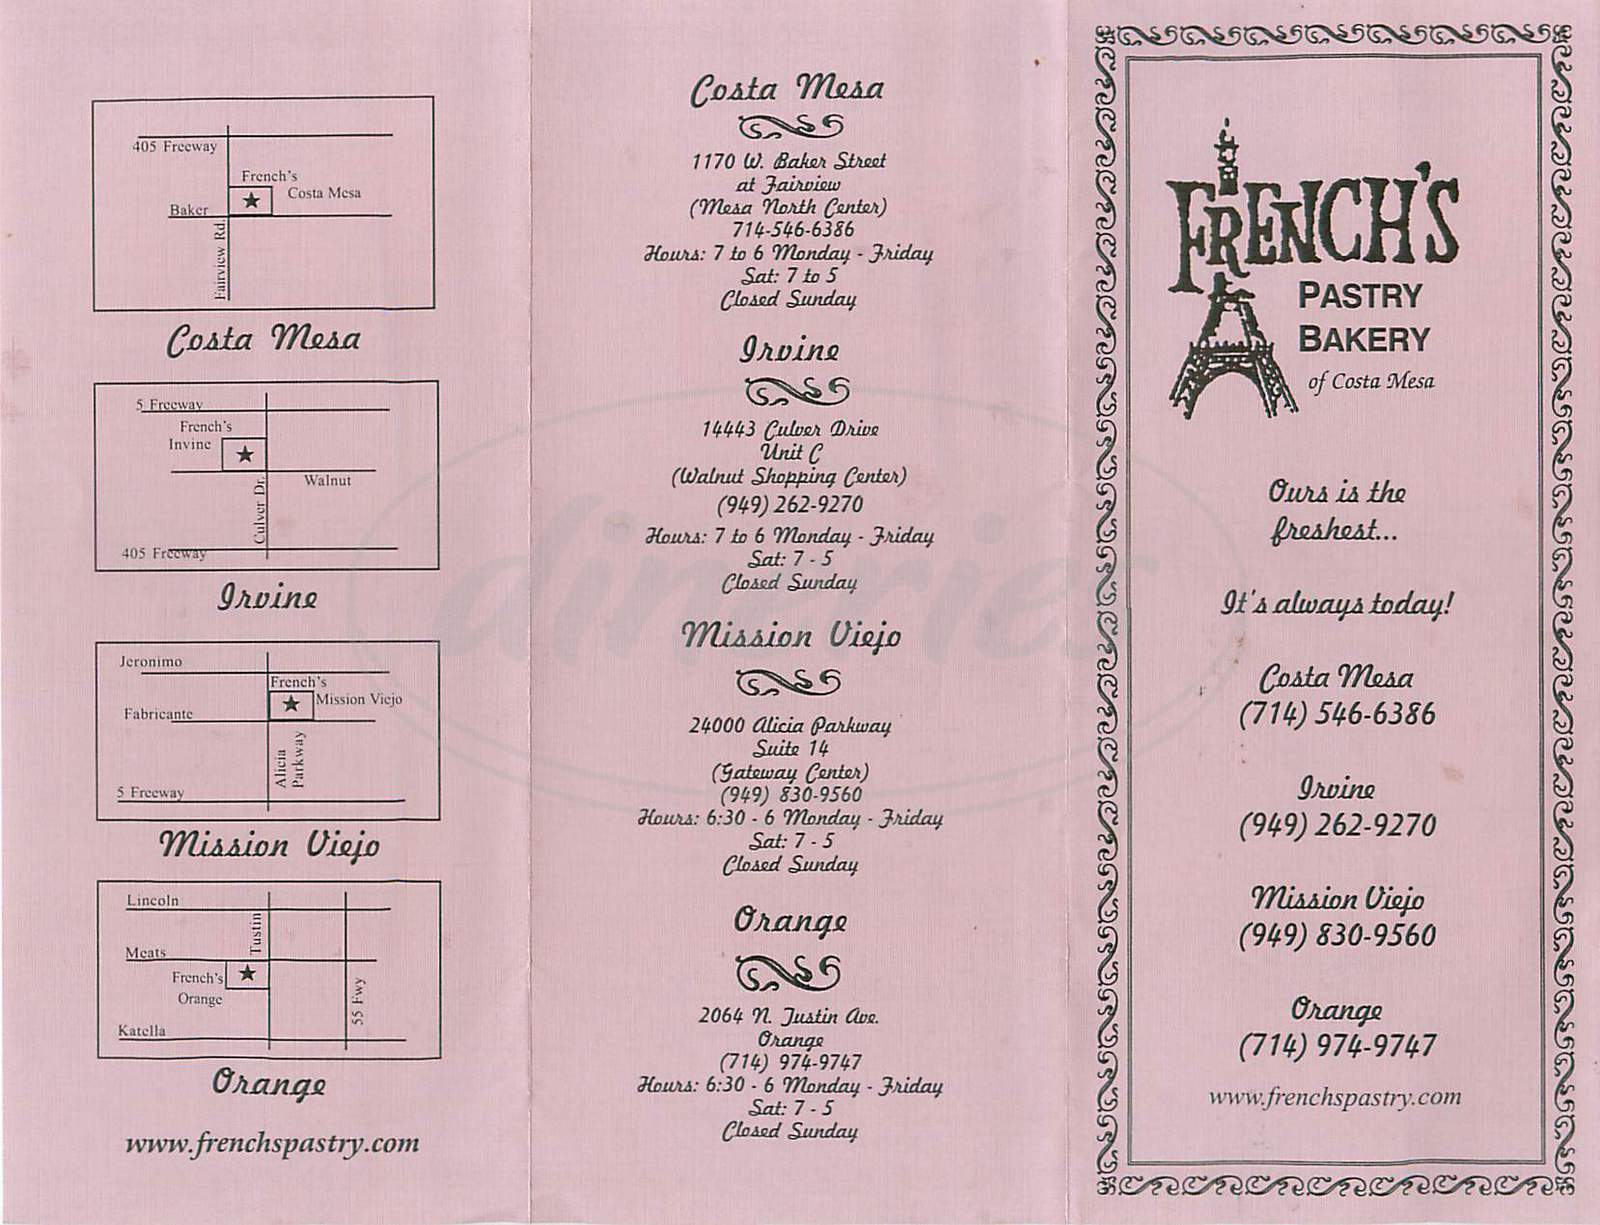 menu for French's Pastry Bakery